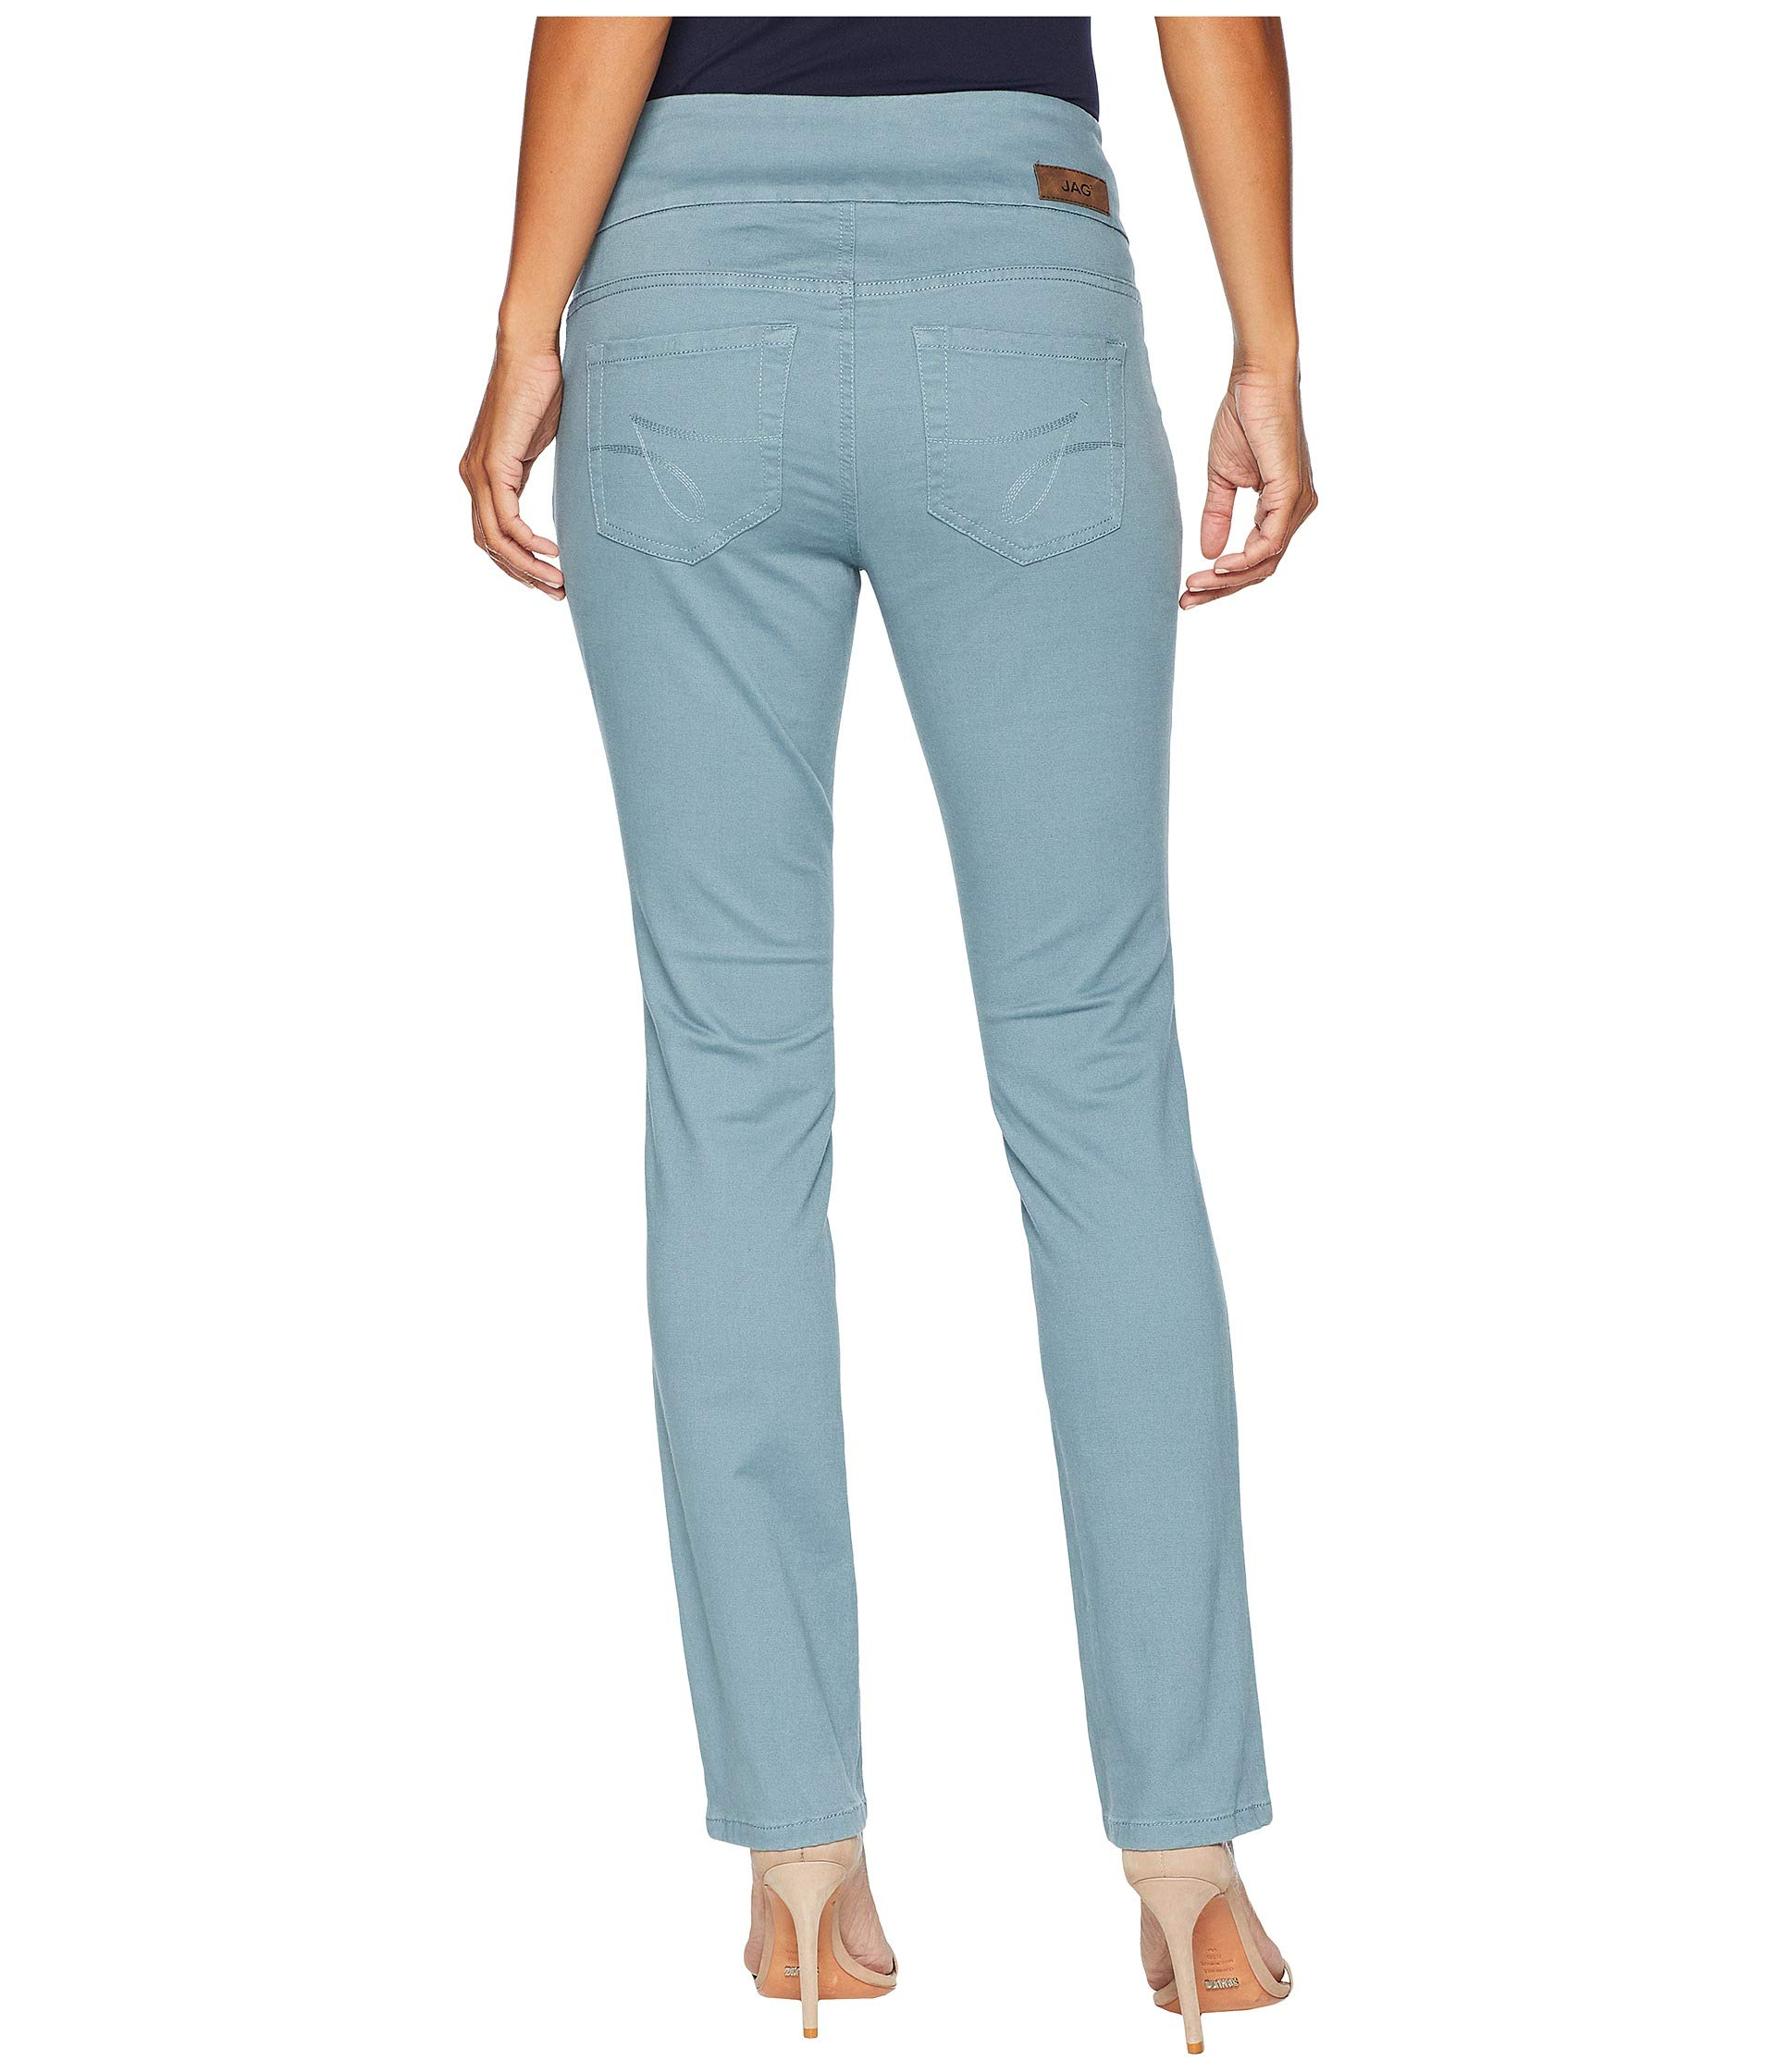 On Jag Storm Twill Peri Petite Jeans Pants Pull Sea Straight wIOURIq